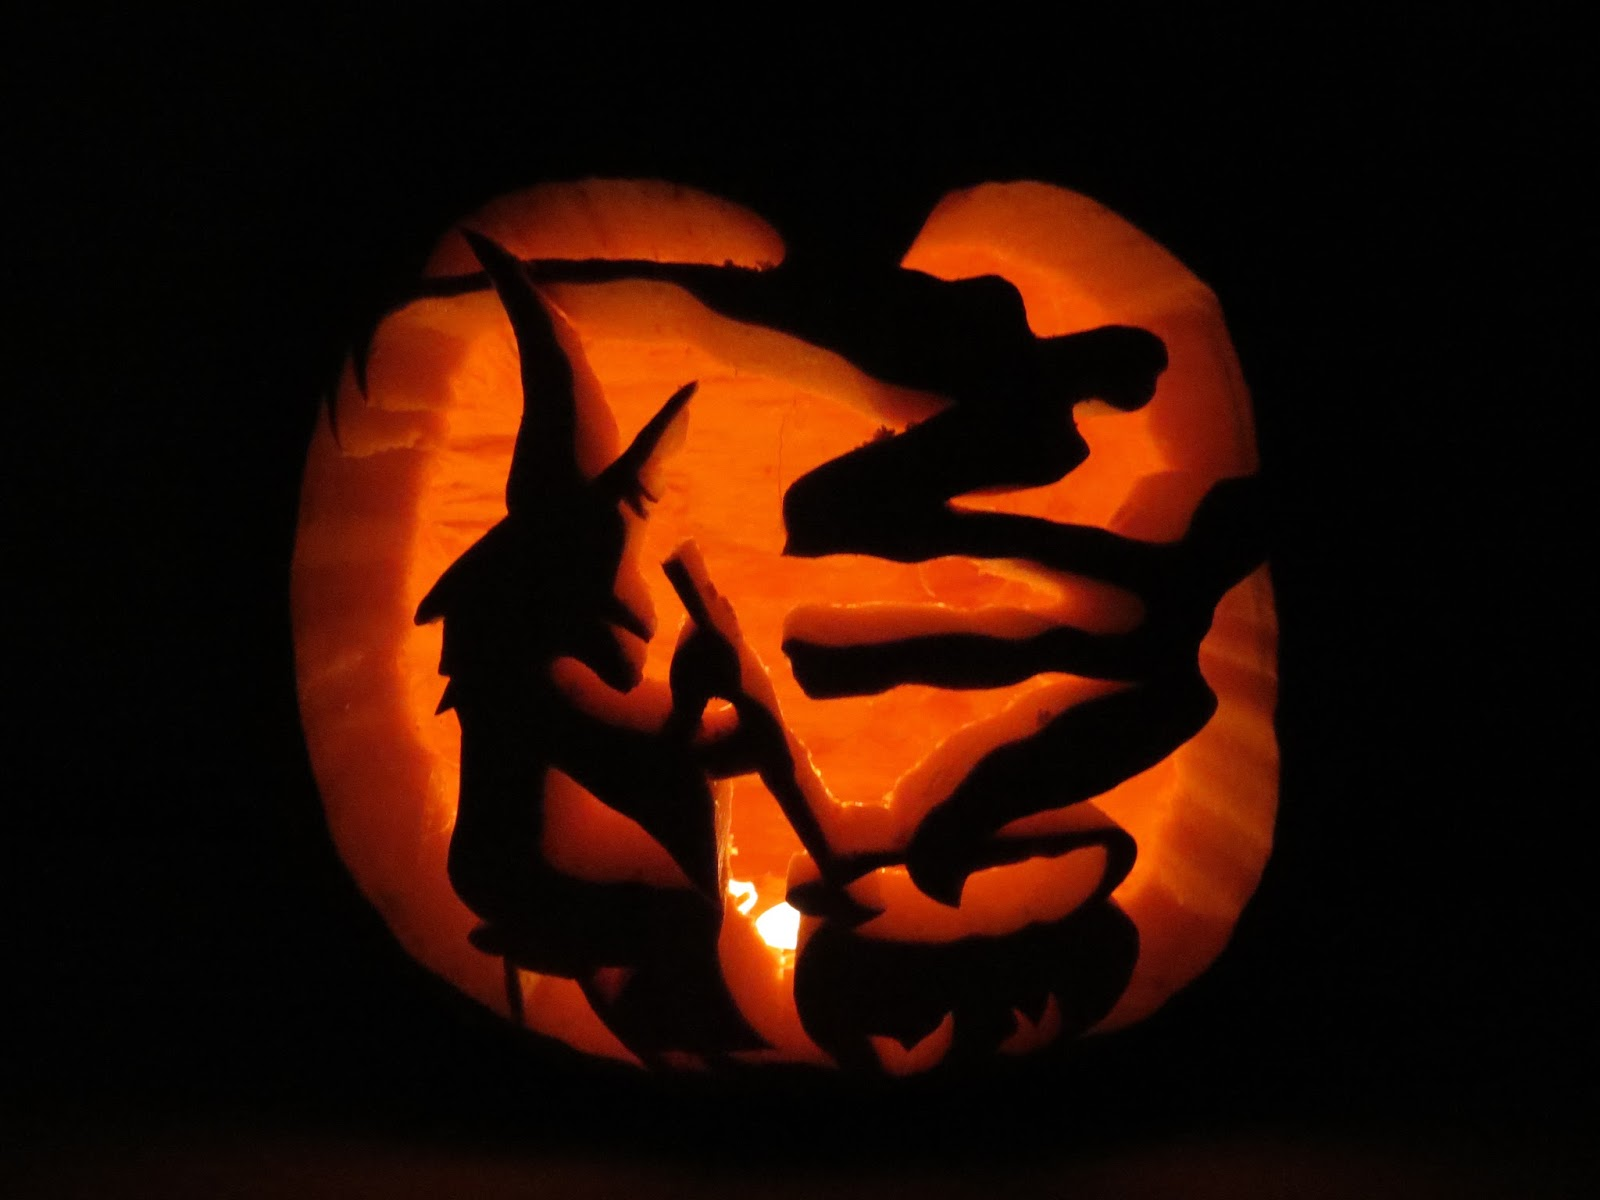 Awesome carved pumpkin designs with